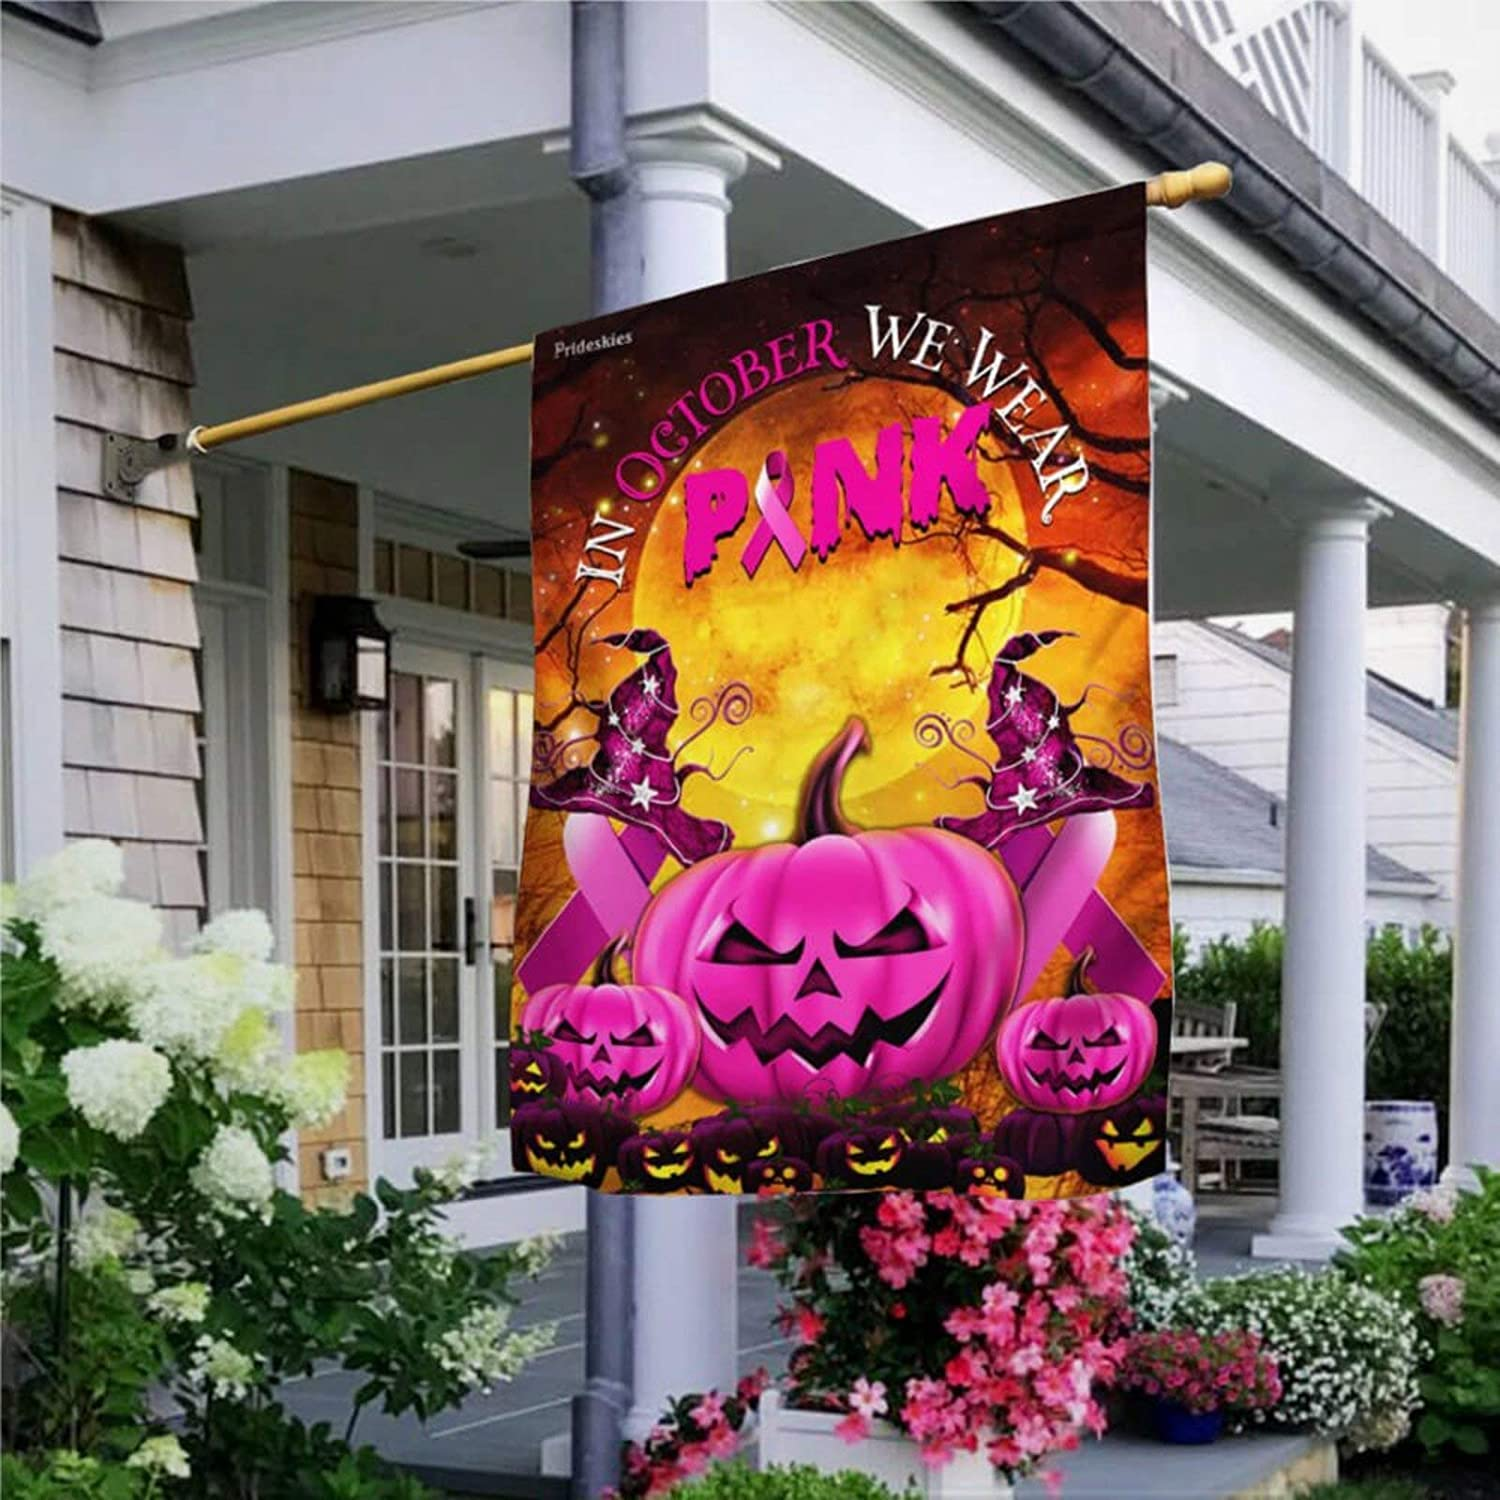 Garden Flag Breast Cancer Awareness. Halloween Pumpkin Flag Yard Decor House Decor Flag Seasonal Banners for Patio Lawn Outdoor 28x40""